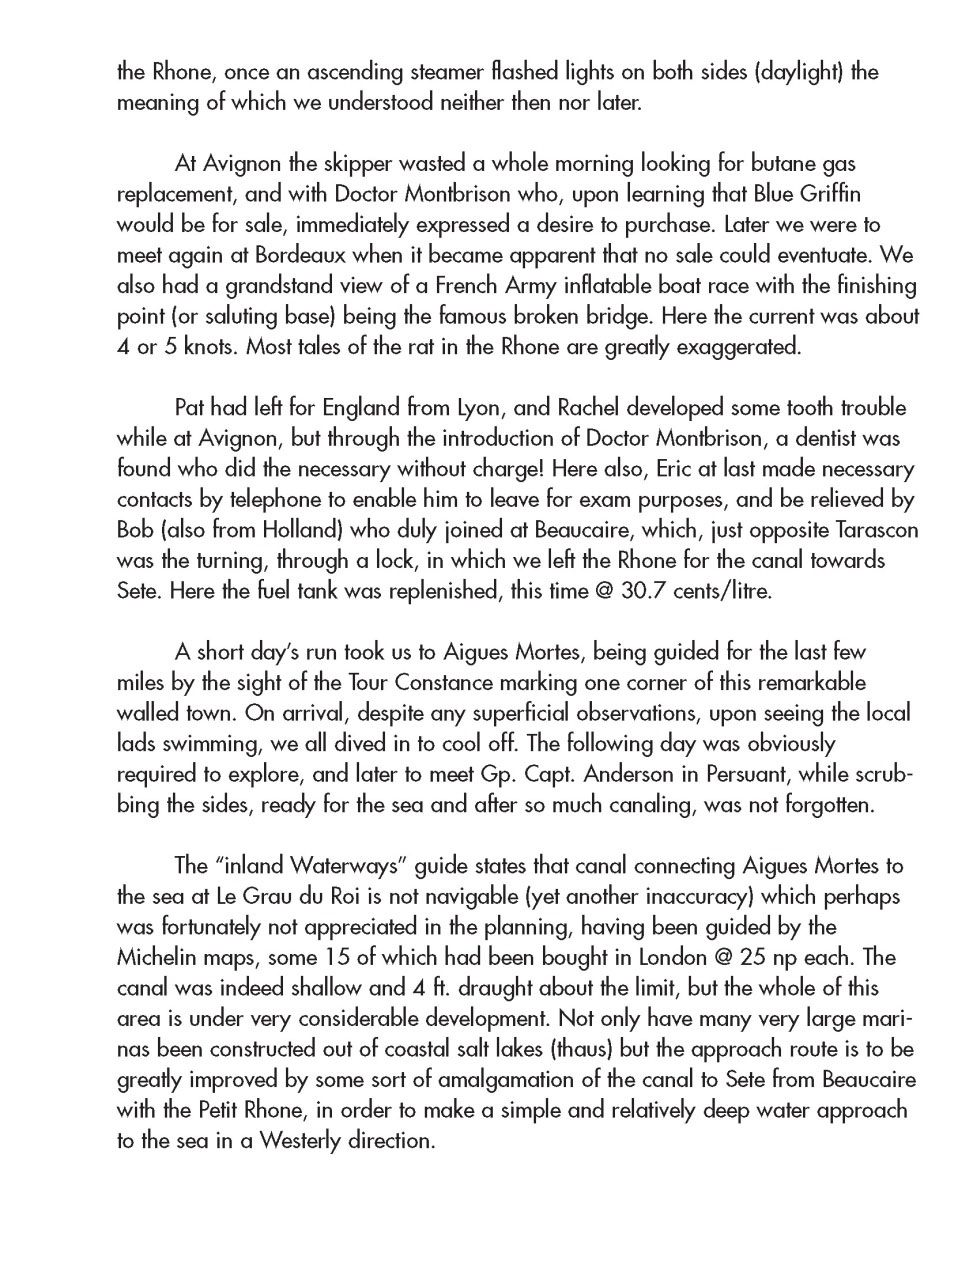 Narrative1971_Page_10